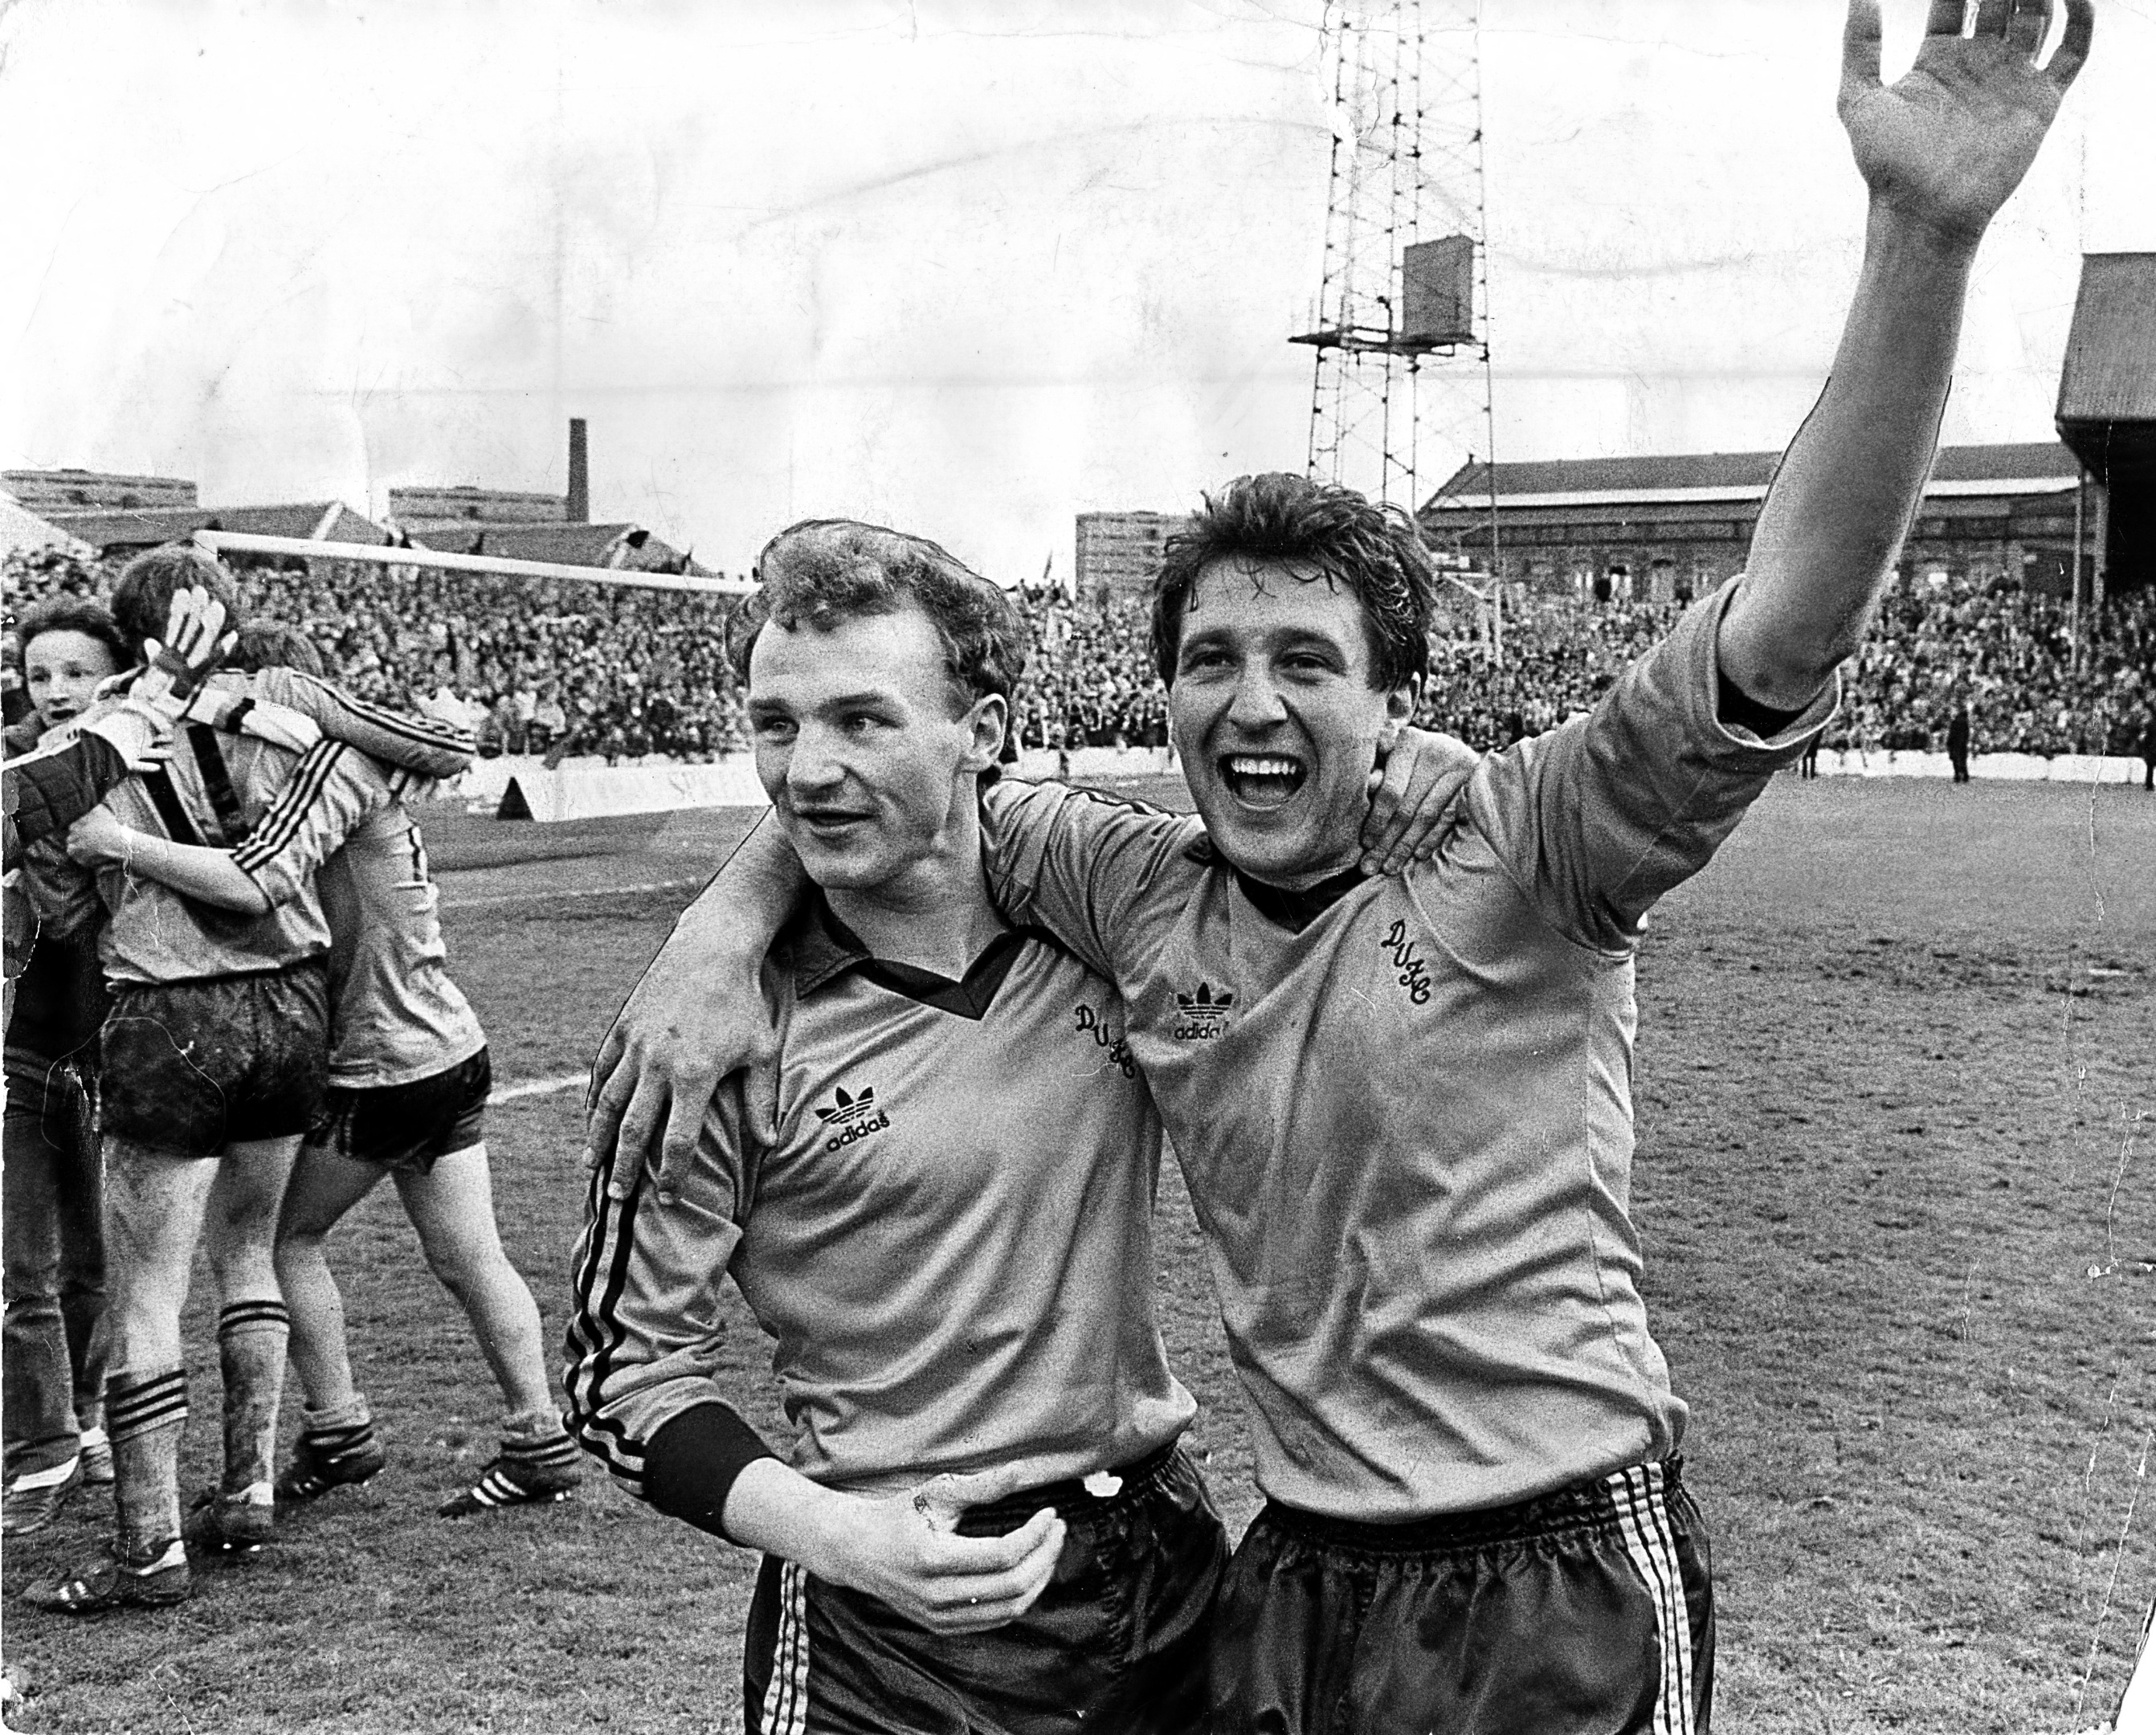 Ralph Milne special edition tribute Dundee Utd v Dundee. John Reilly and Ralph Milne in happy mood.  Dundee United players Ralph Milne and John Reilly.  C&A 16.5.83  C288 1983-05-14 Ralph Milne (C)DCT